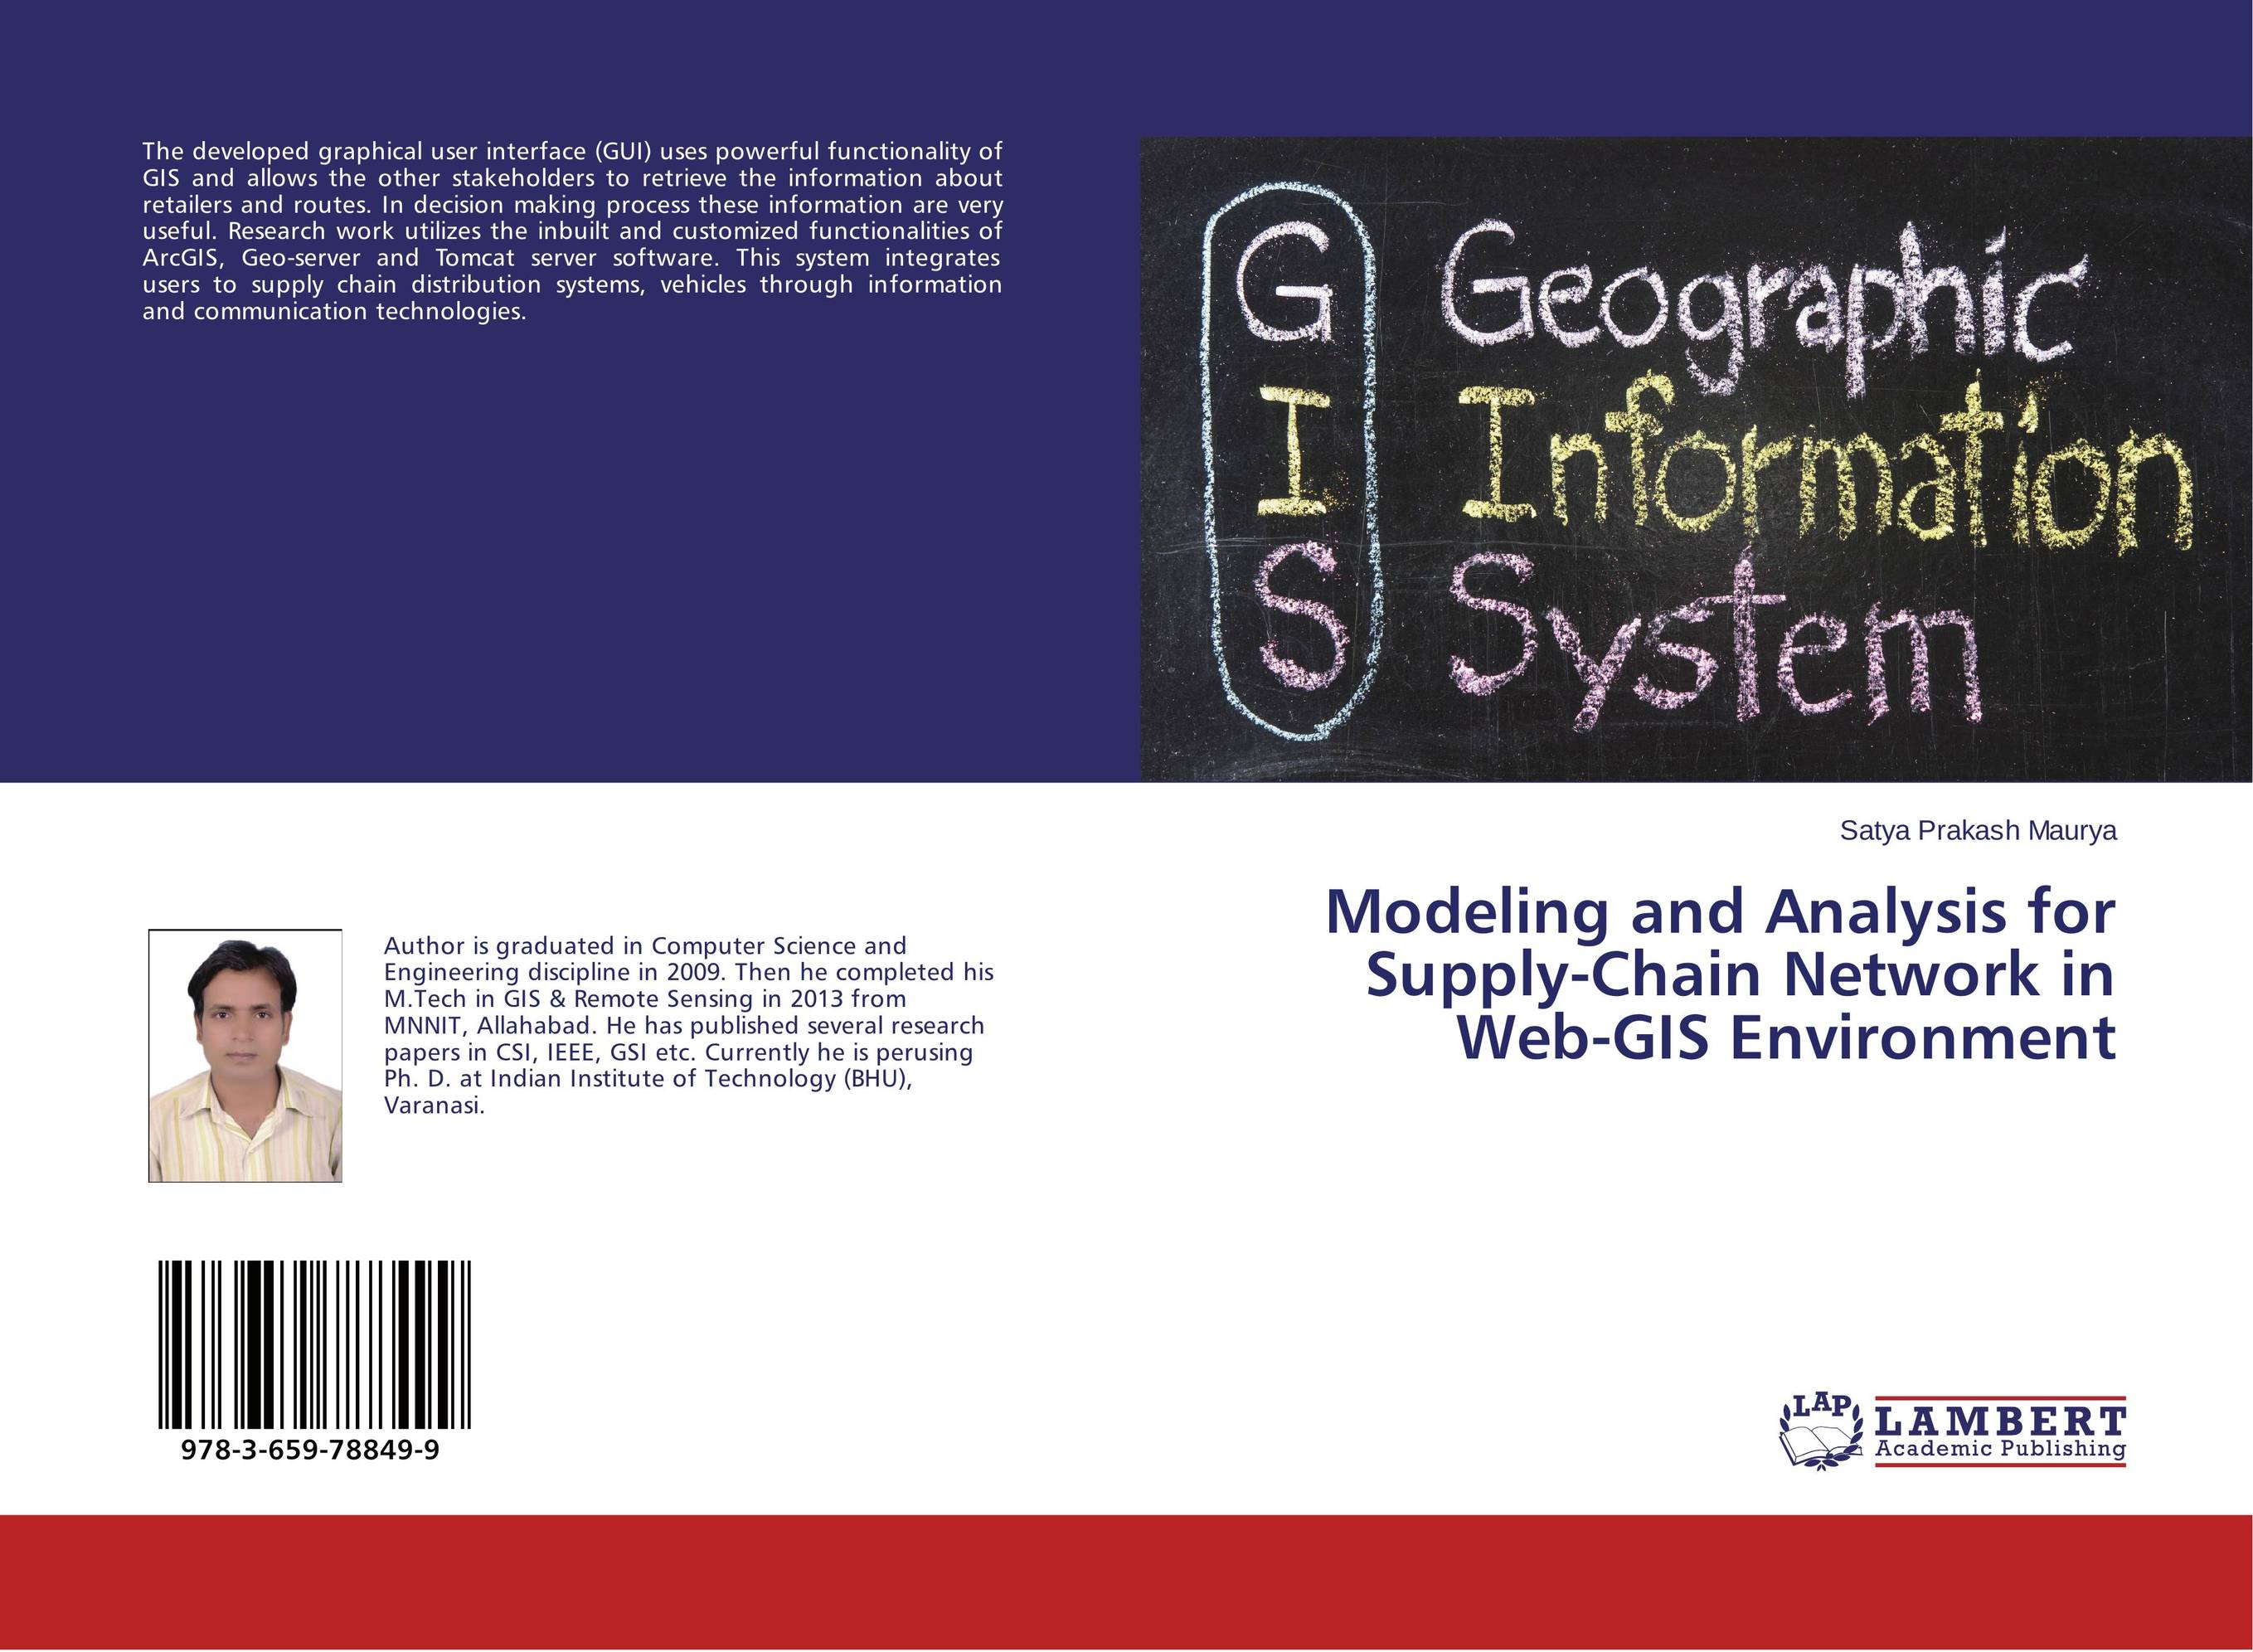 Modeling and Analysis for Supply-Chain Network in Web-GIS Environment honey value chain analysis